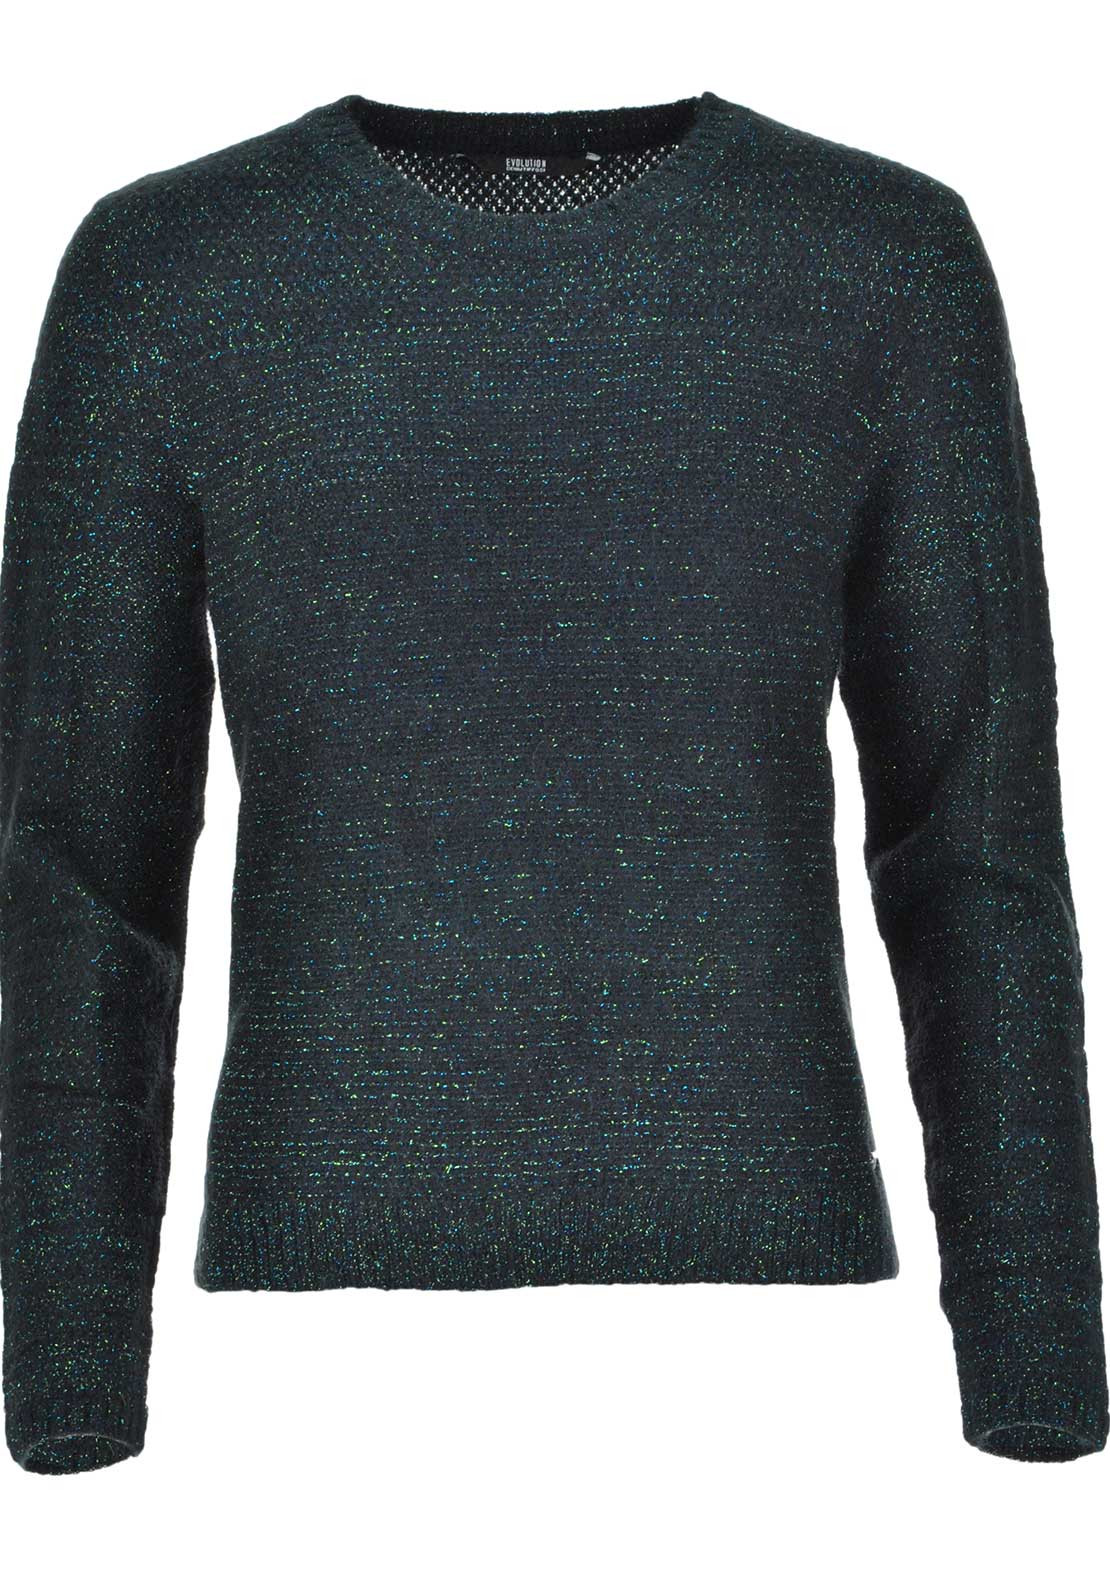 Tiffosi Julia Glitter Knitted Zip Detail Jumper, Green